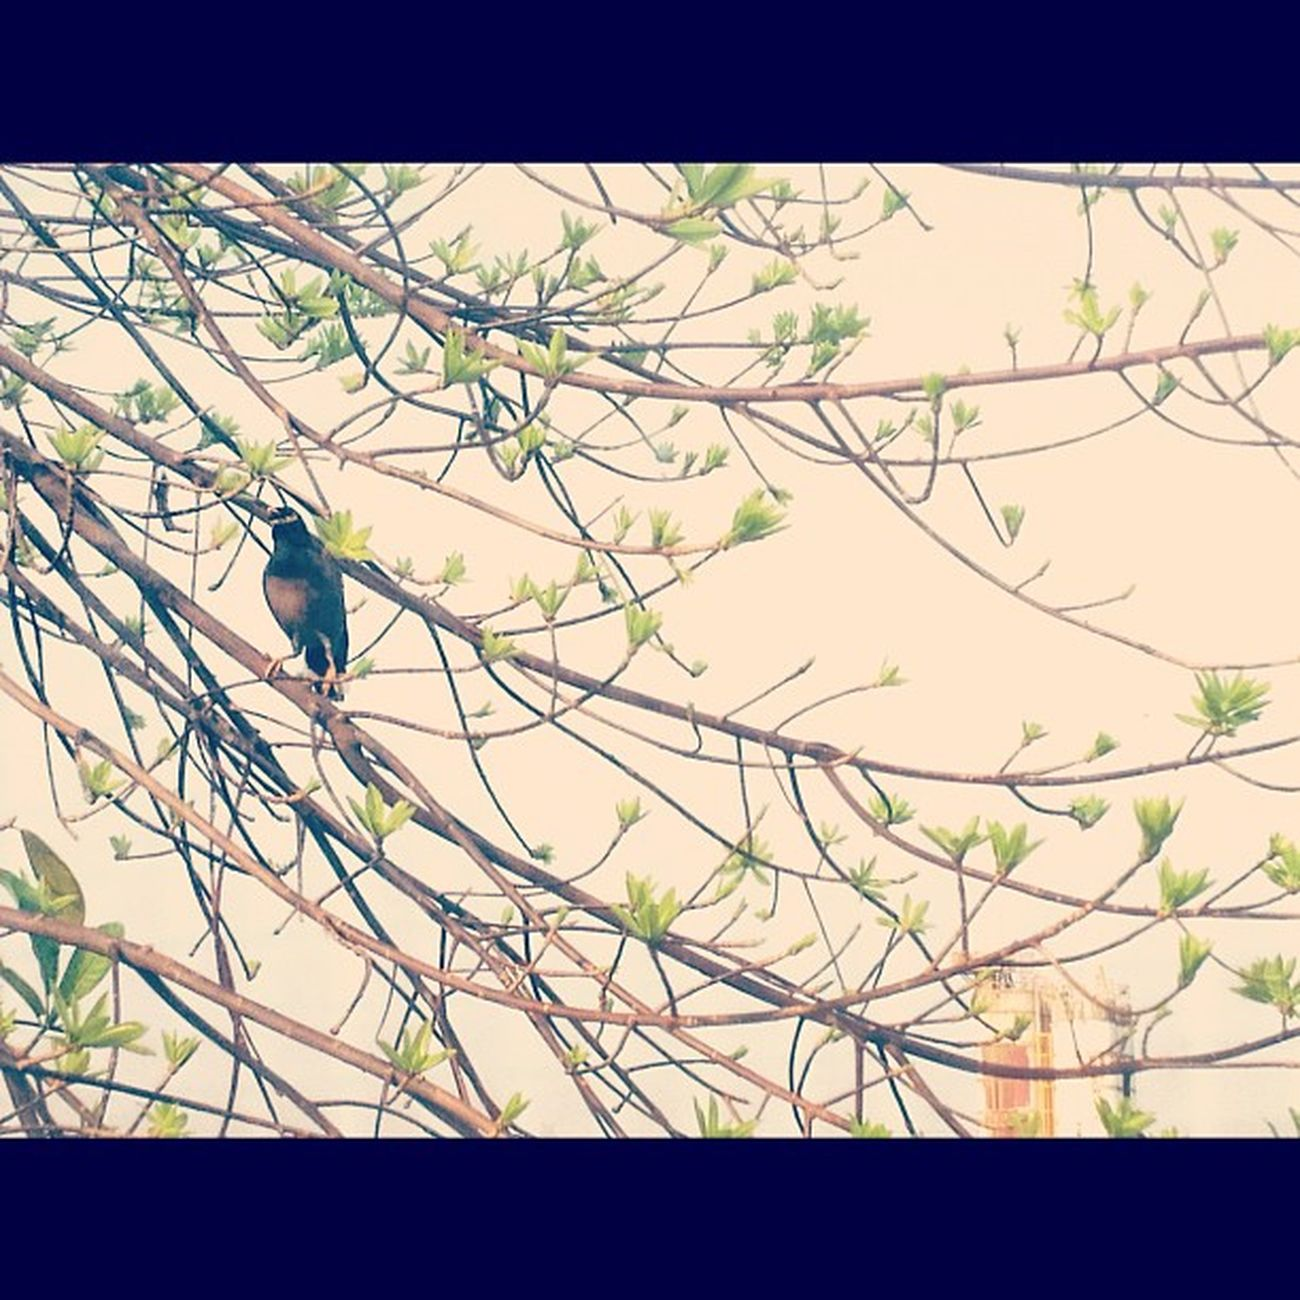 Sunday somewhere Sunday Holiday Bangkok Thailand Bird Instarpic Instargram